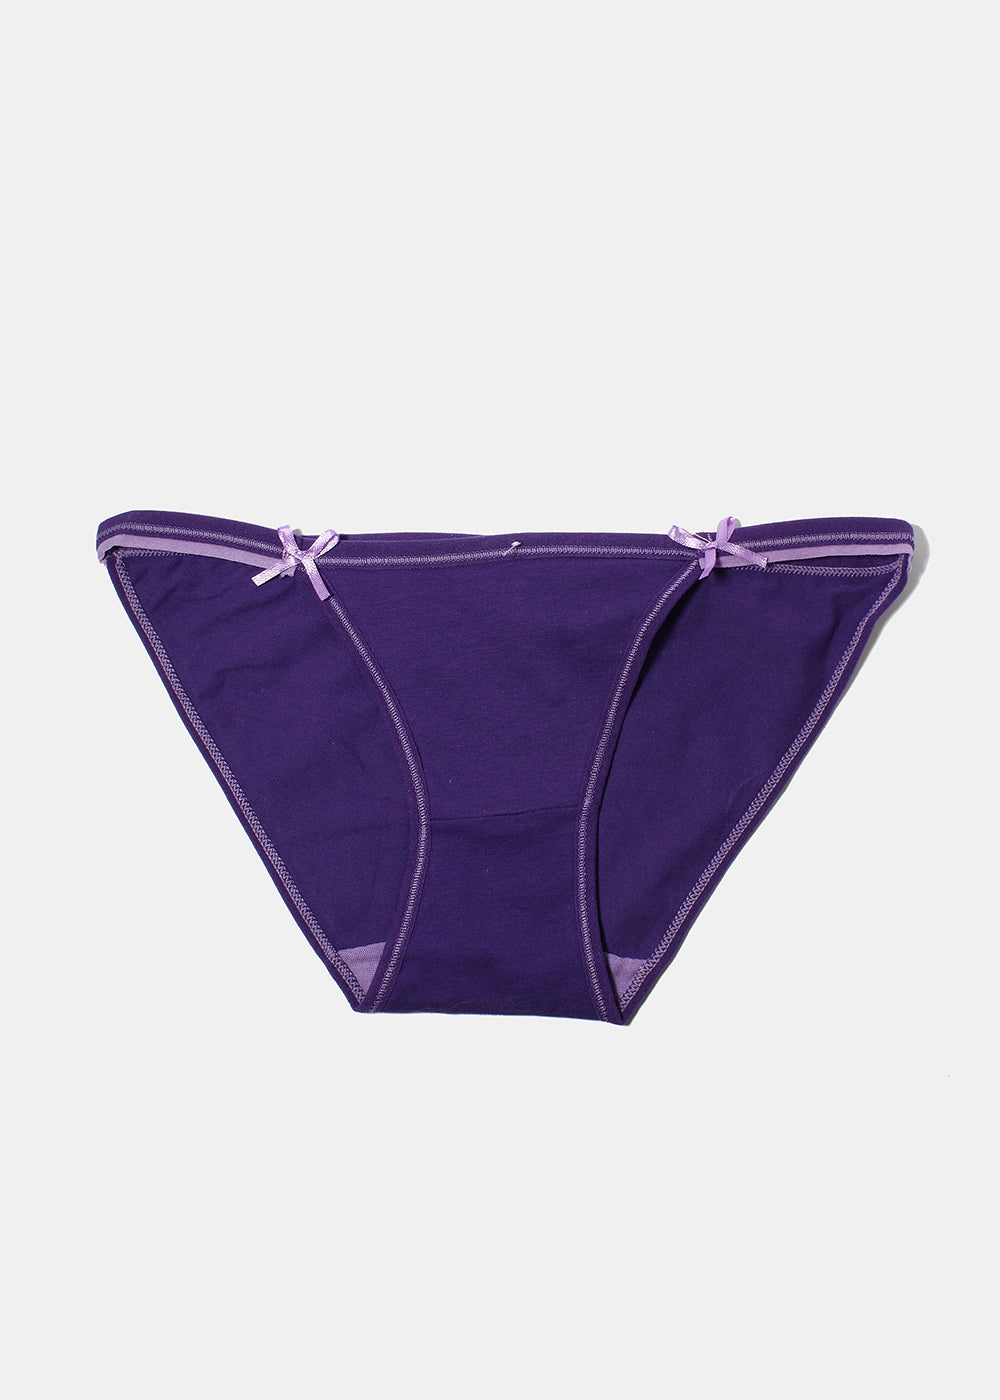 Bow Stretch Bikini Panty- Purple